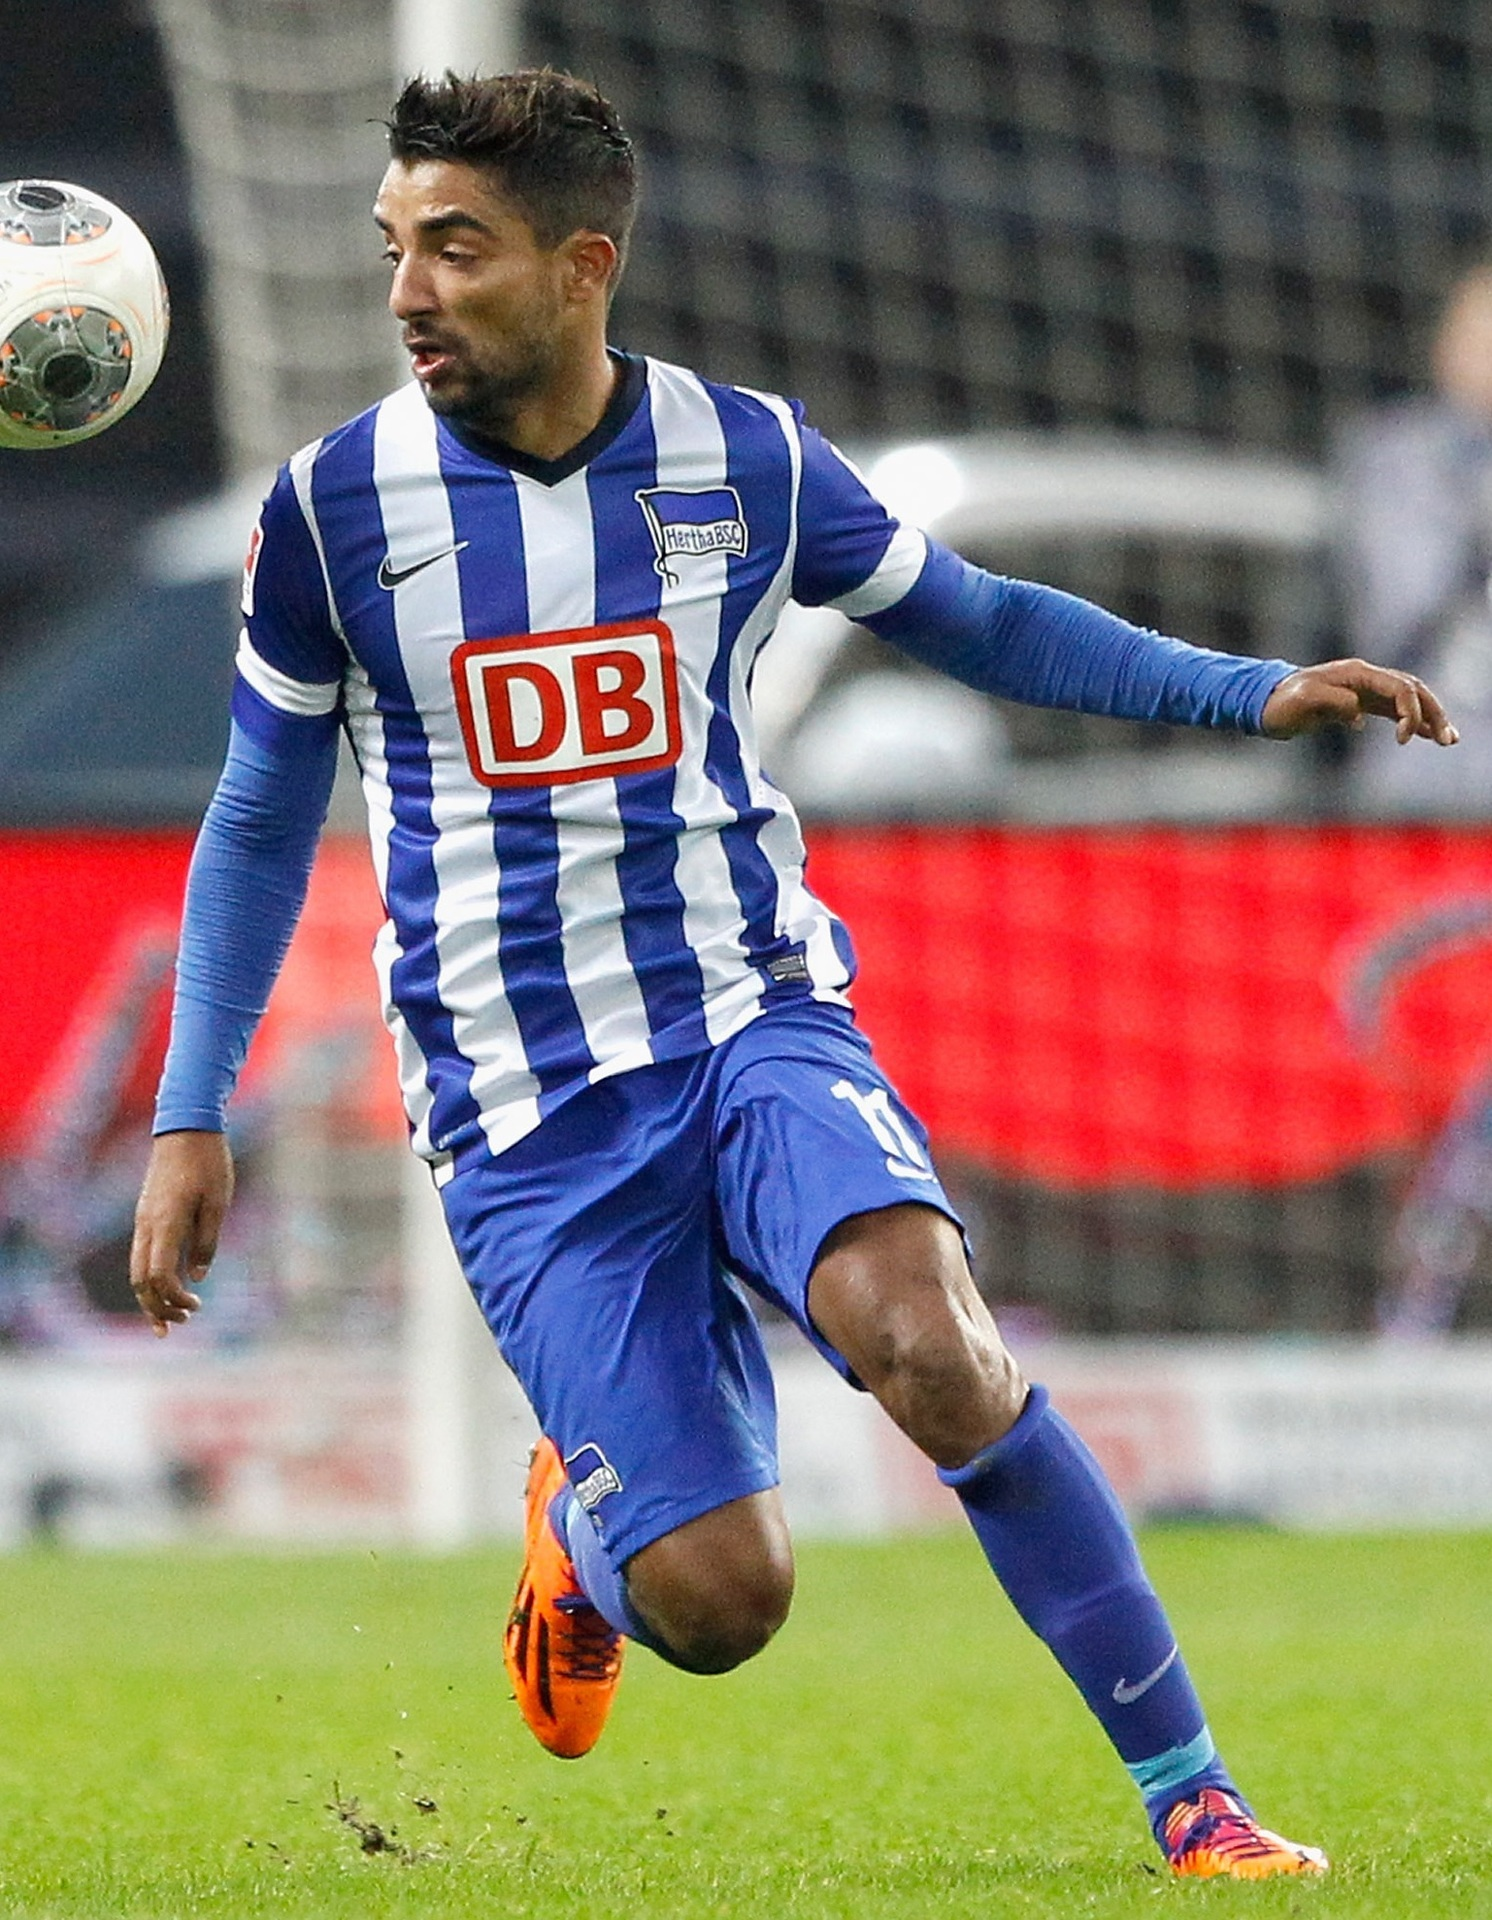 Hertha-Berlin-13-14-NIKE-home-kit.jpg